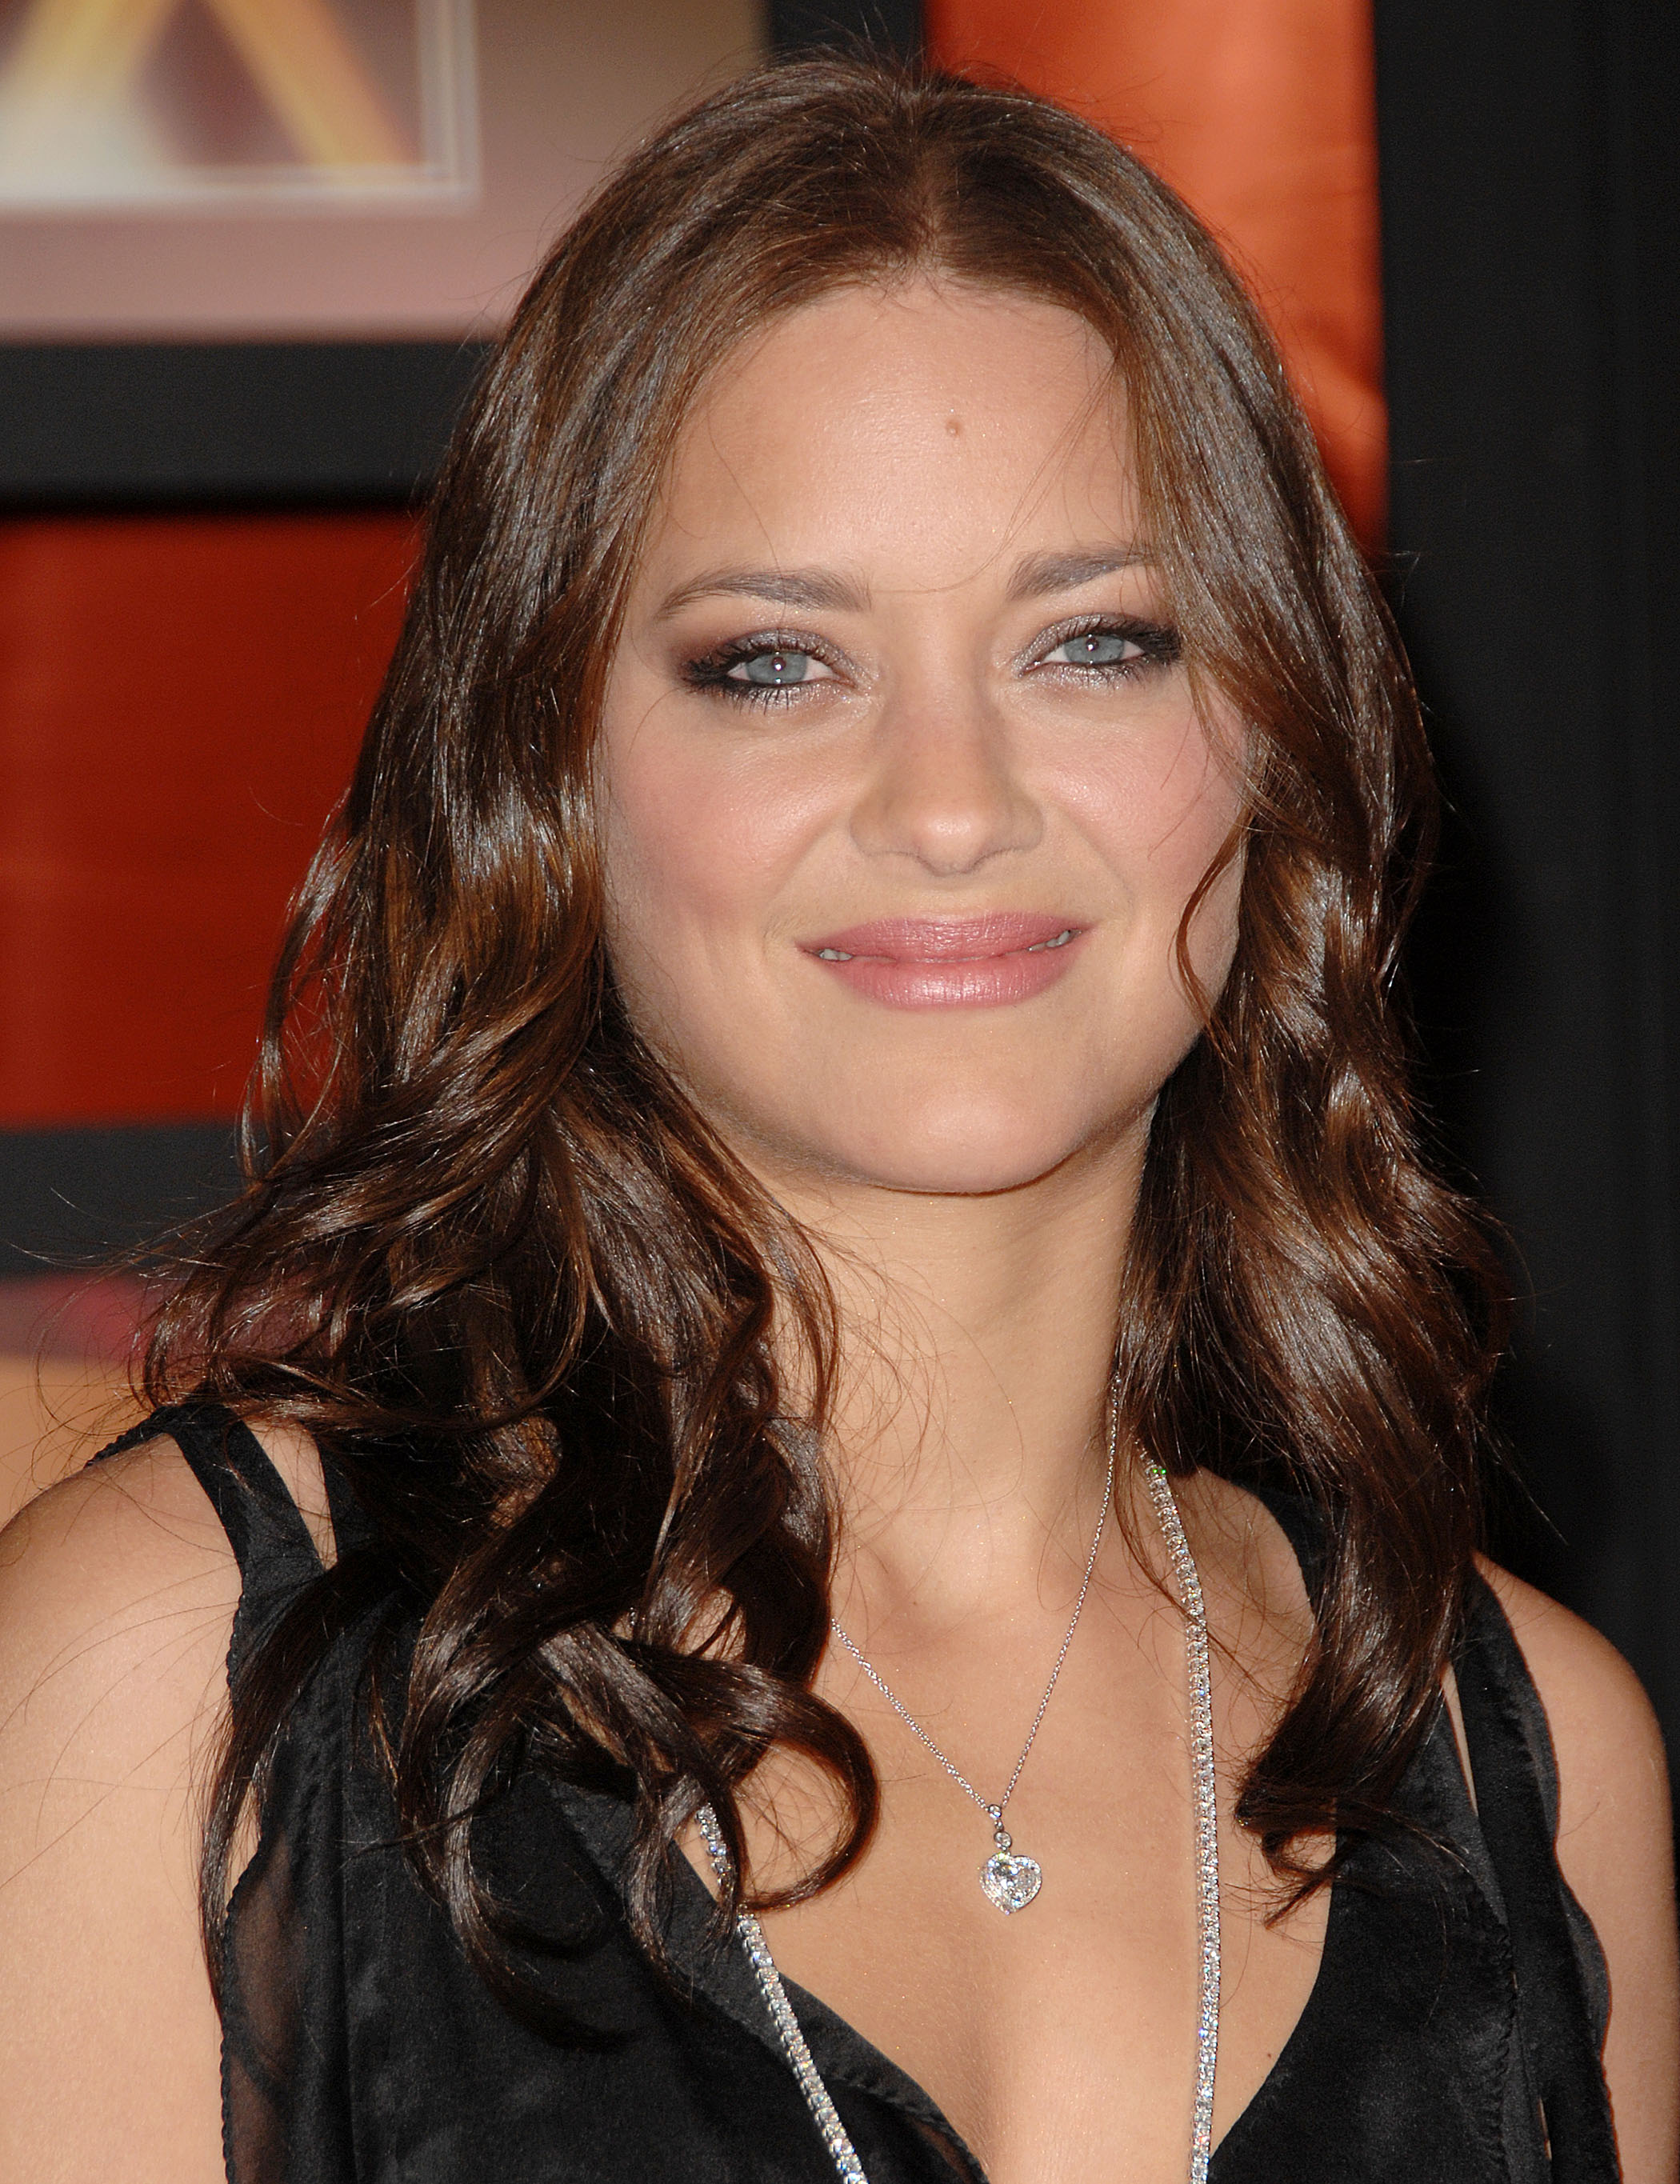 05015_Marion_Cotillard_Critics_Choice_Awards_0107_033_122_588lo.jpg